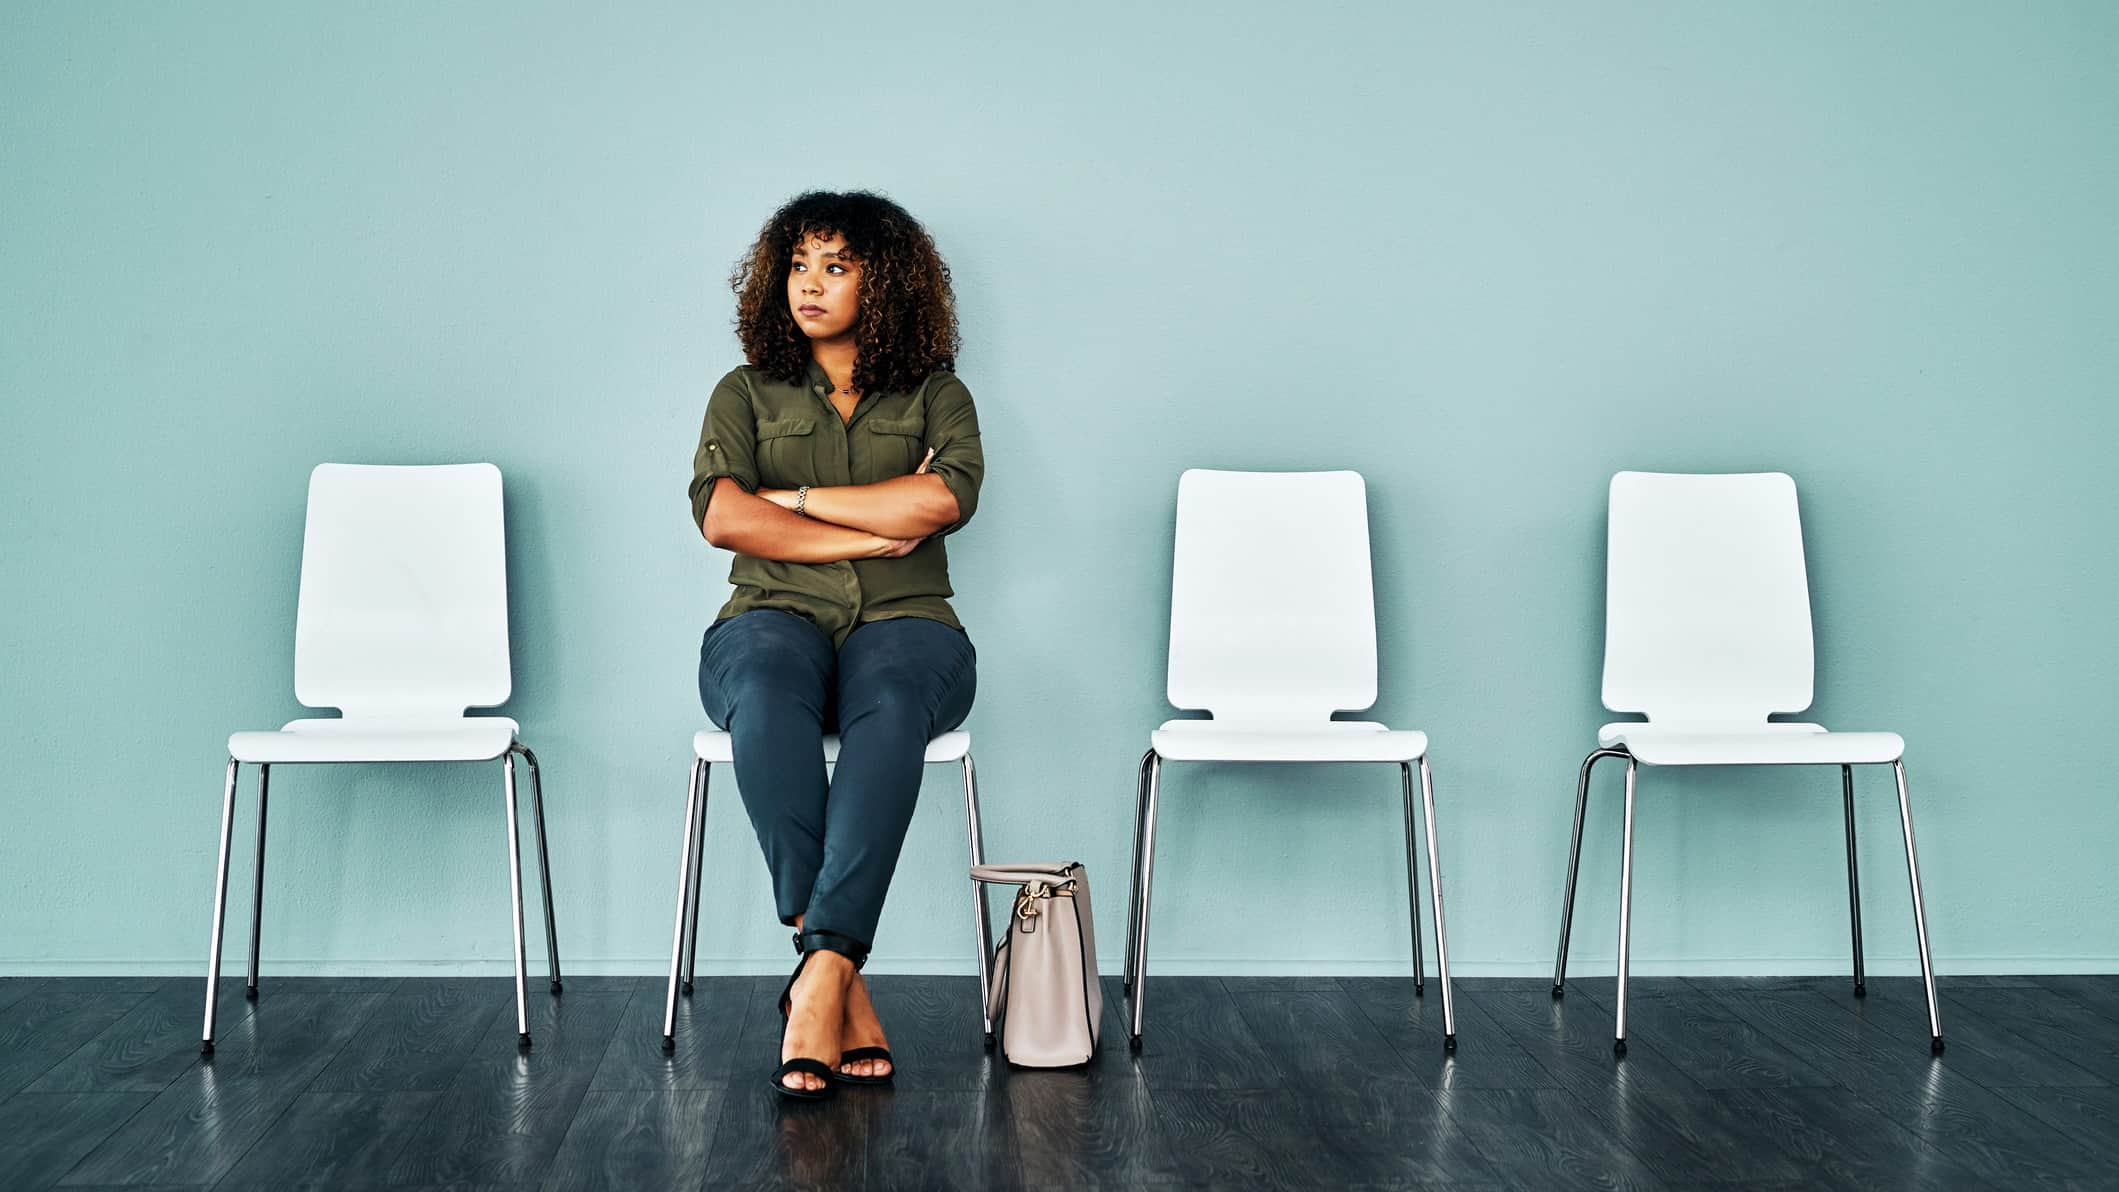 Worried unemployed woman sits on white chair waiting for job interview